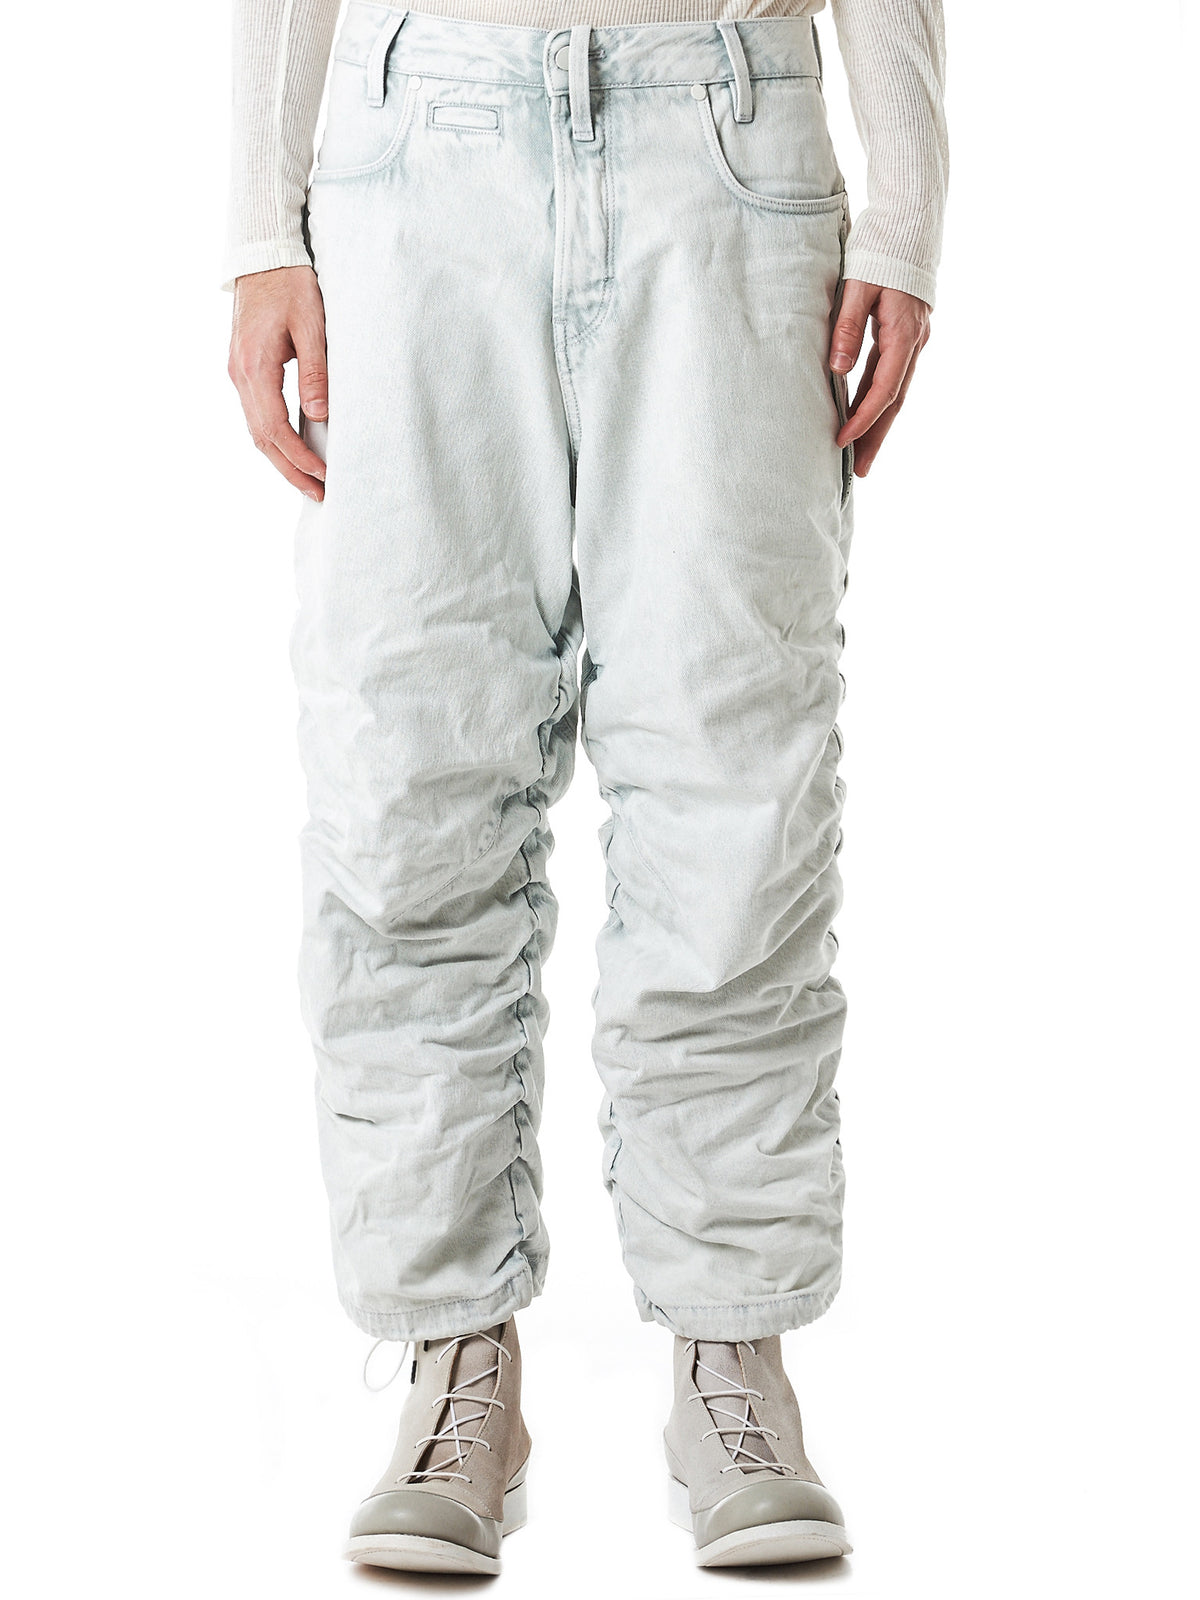 Tapered Parachute Denim Jeans (D05315-9112-8027)